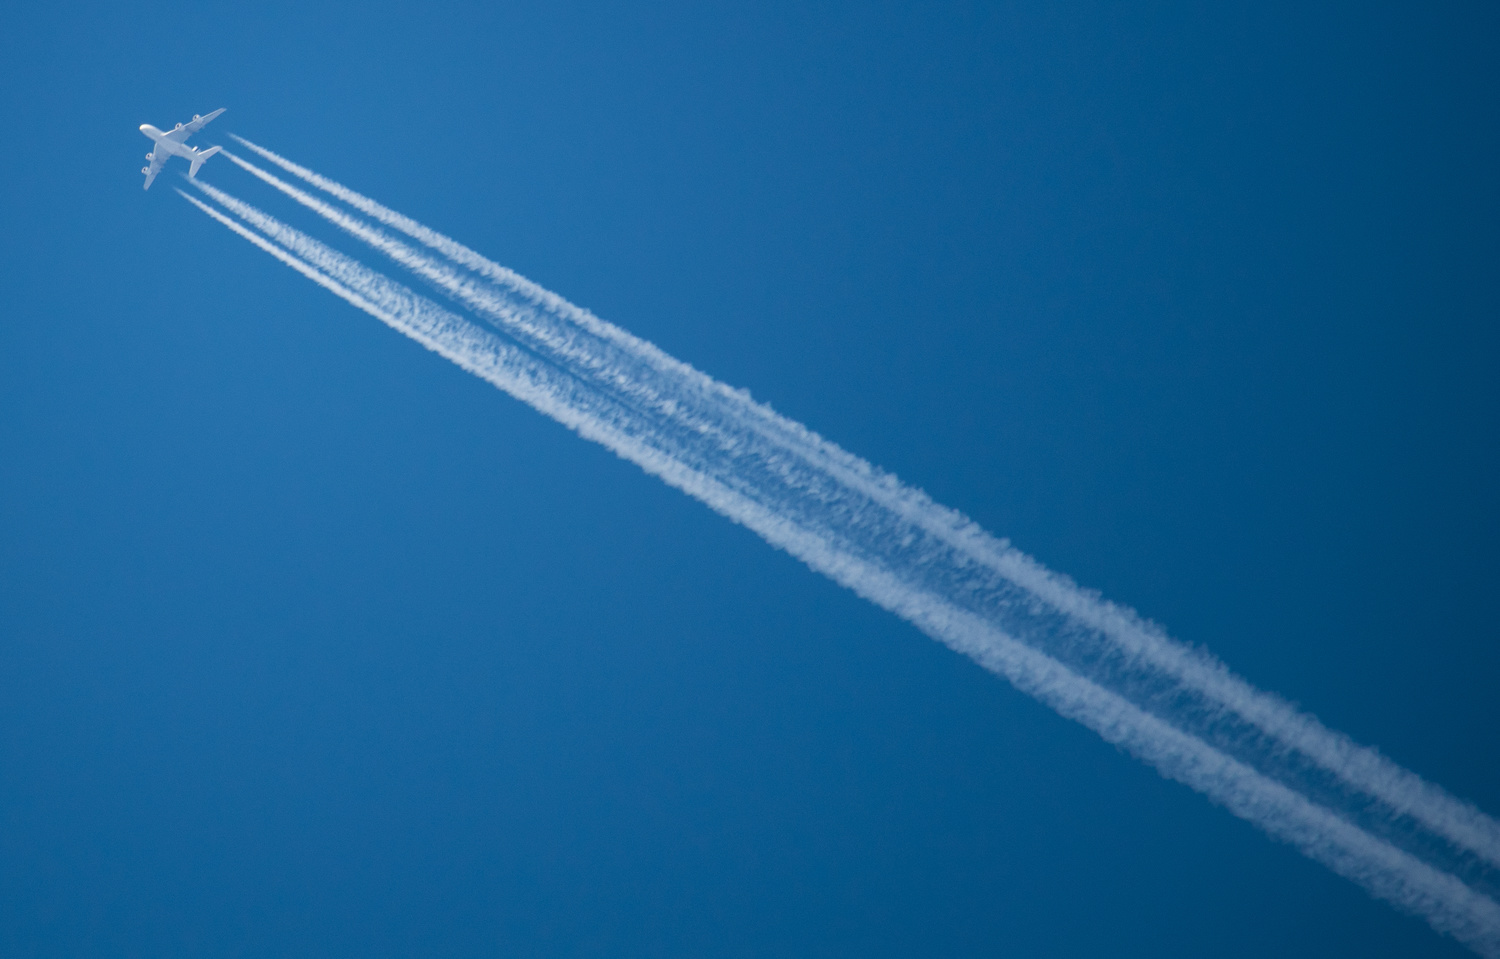 Jet in blue sky by Mike Young